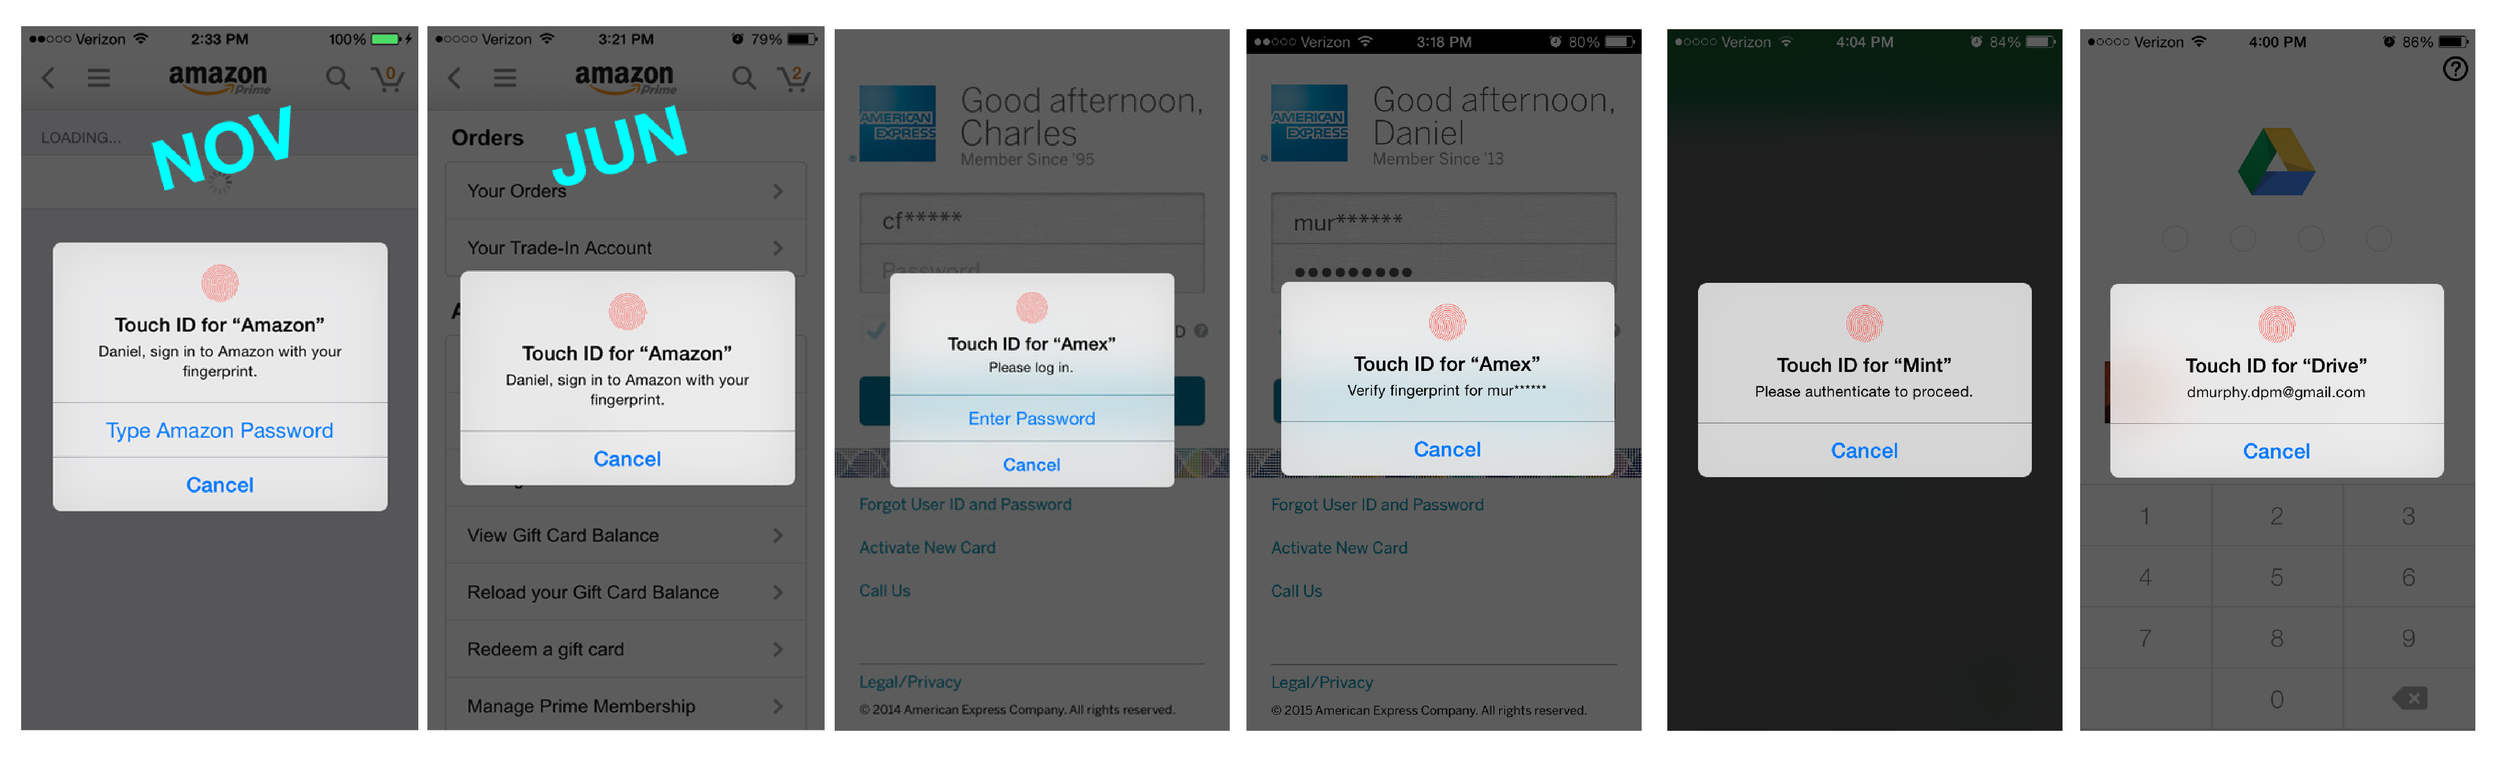 Screenshots taken from the Amazon, American Express, Google Drive, and Mint experiences.